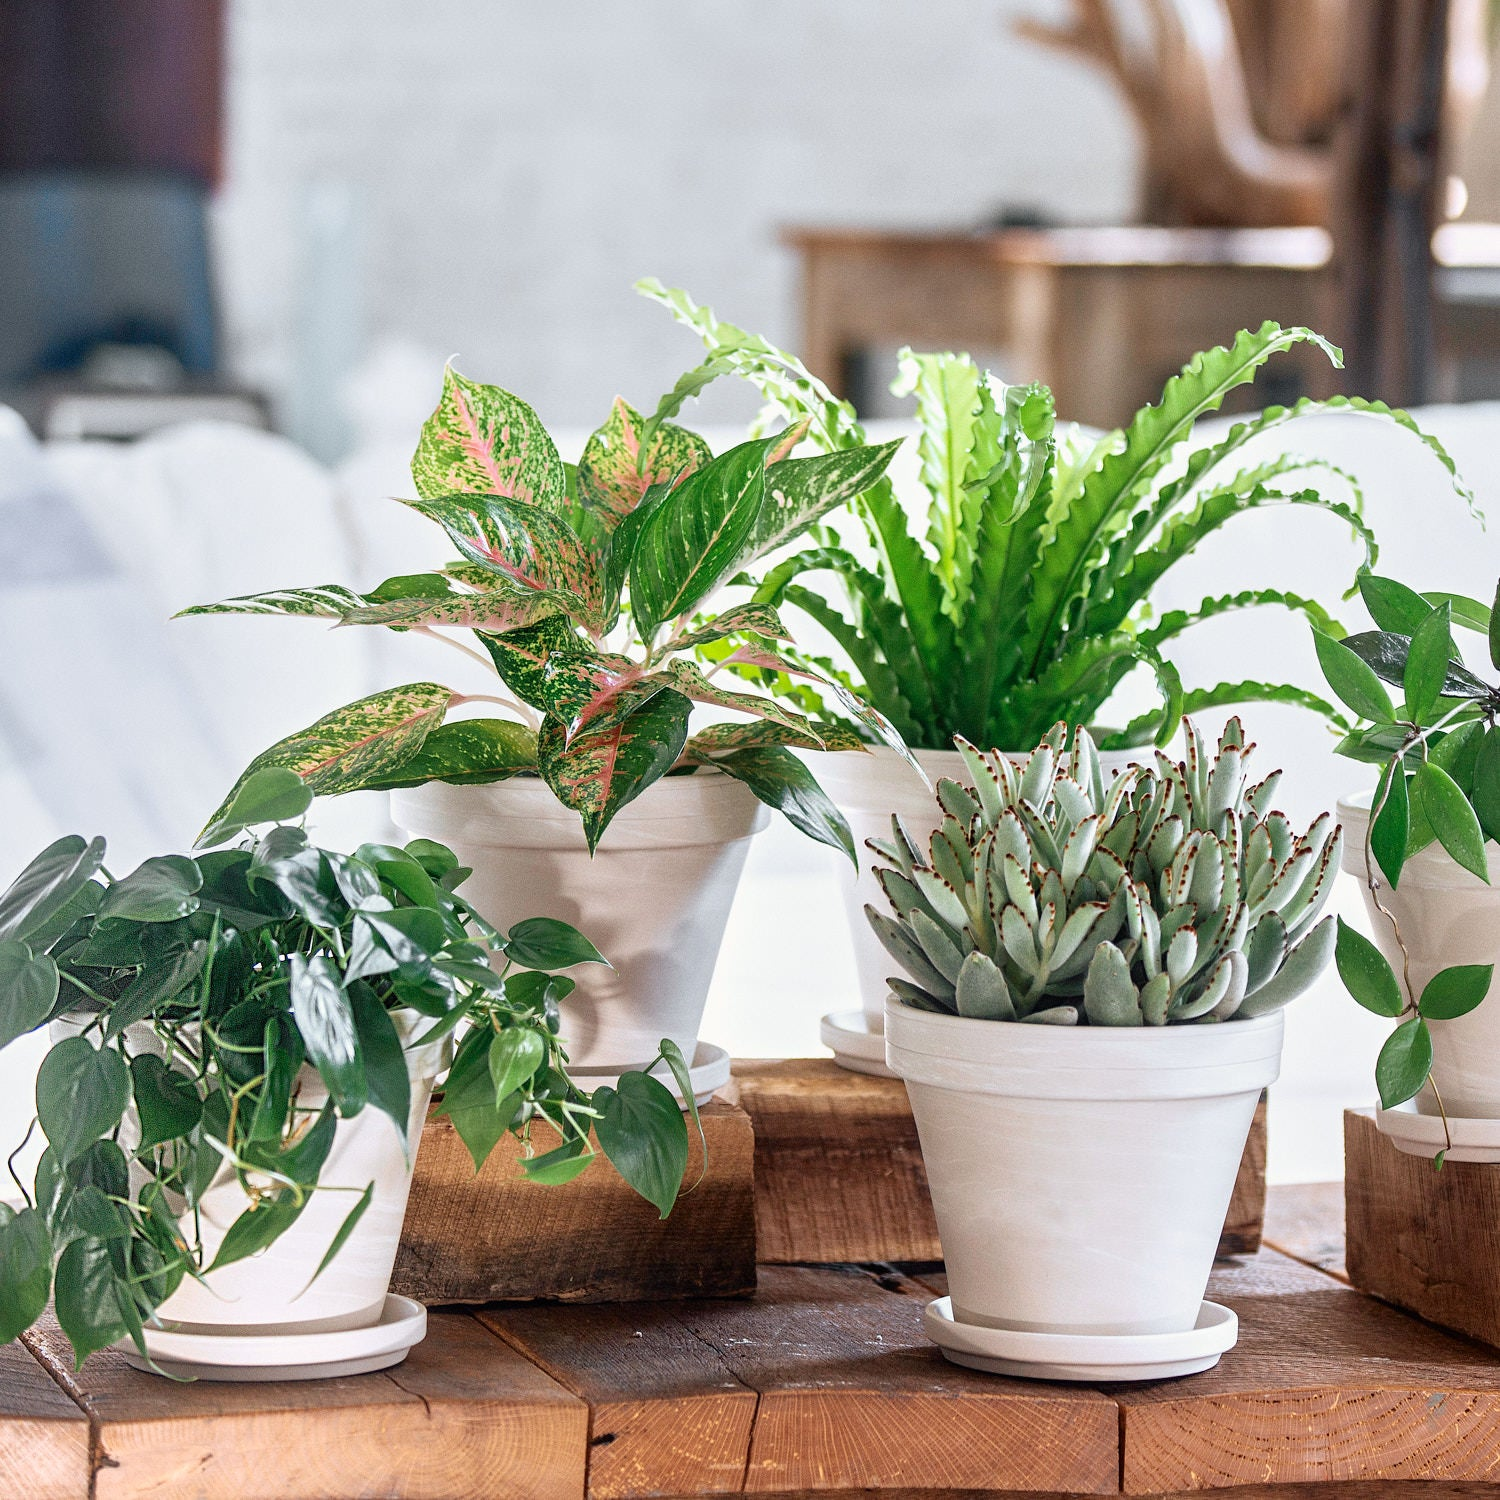 Plants in clay pots - houseplant delivery in NYC